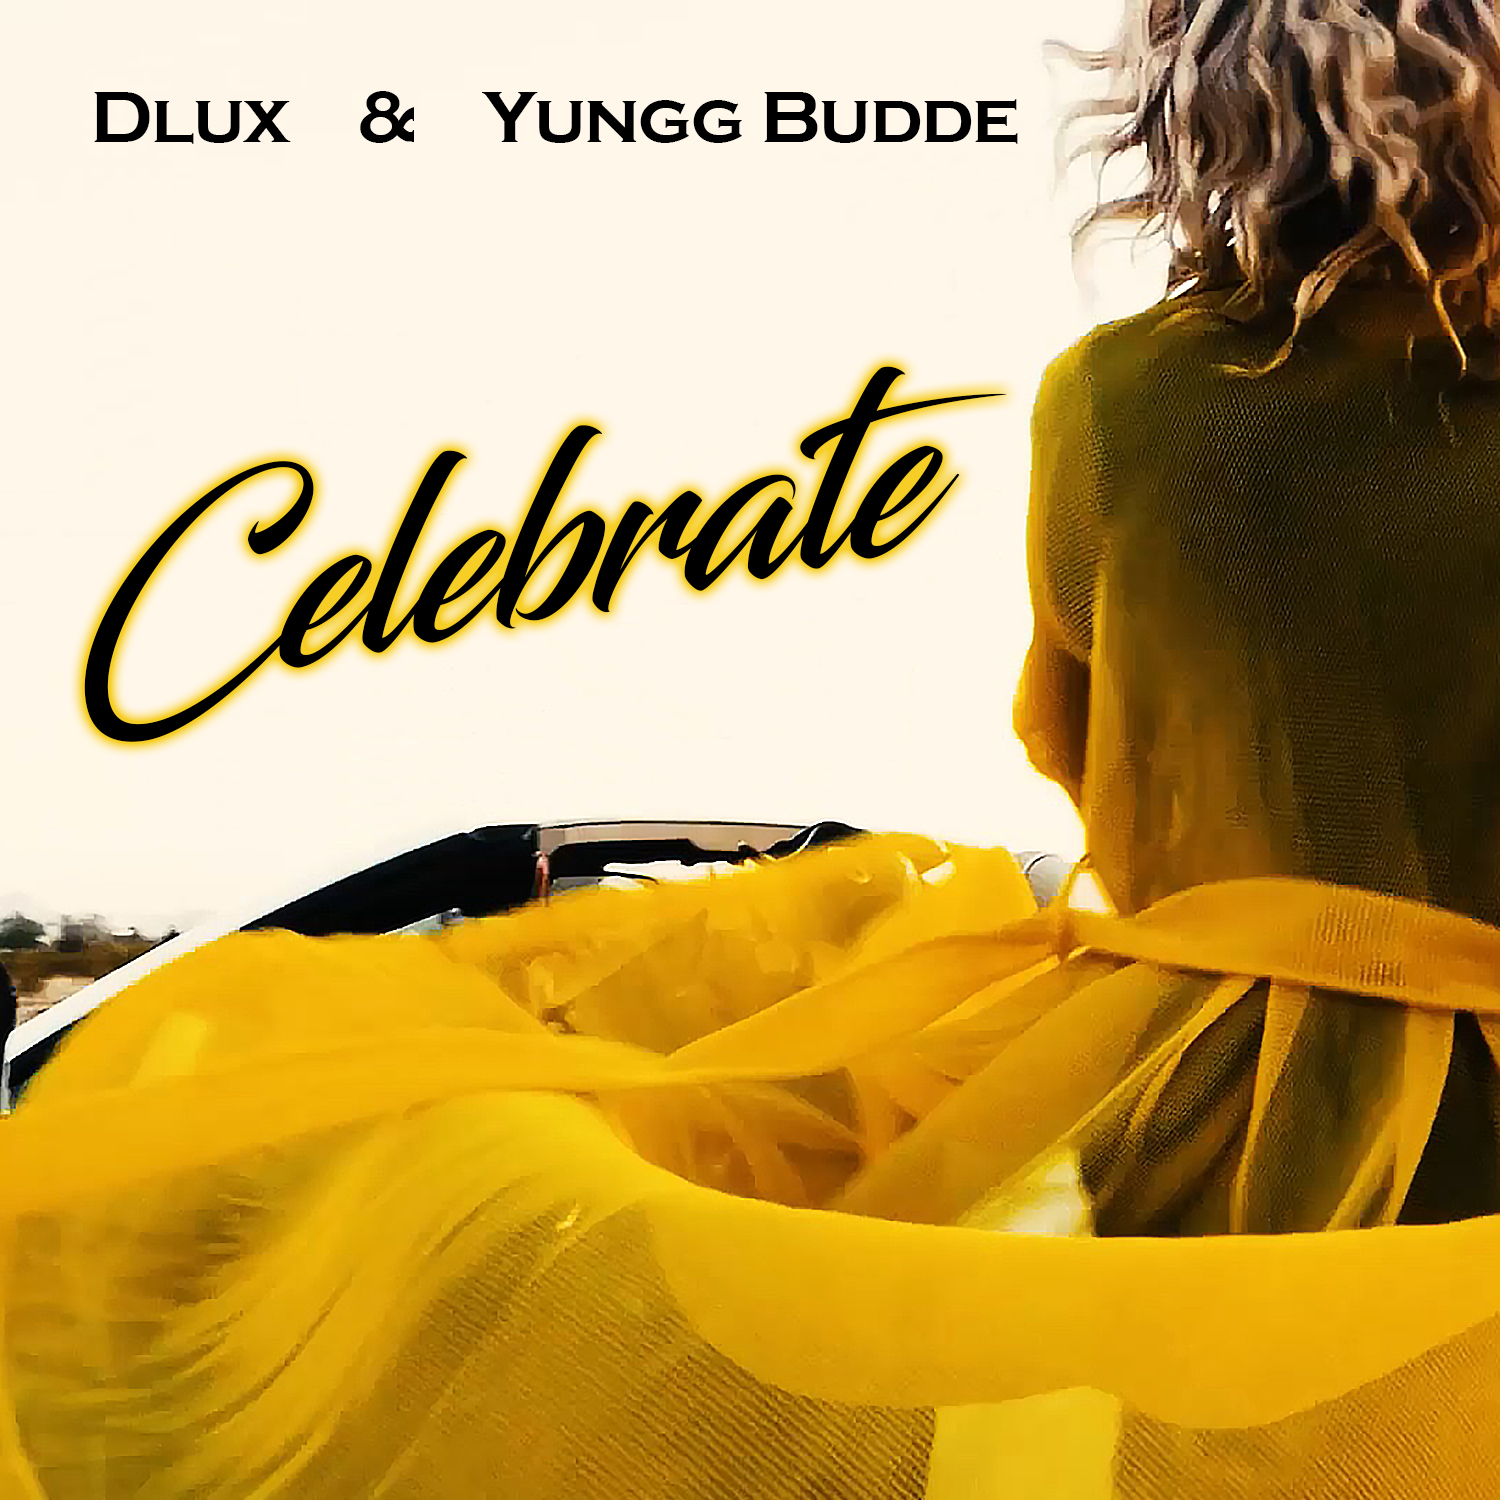 New Video: Dlux – Celebrate Featuring Yungg Budde Produced By Mush Millions | @dlux_music